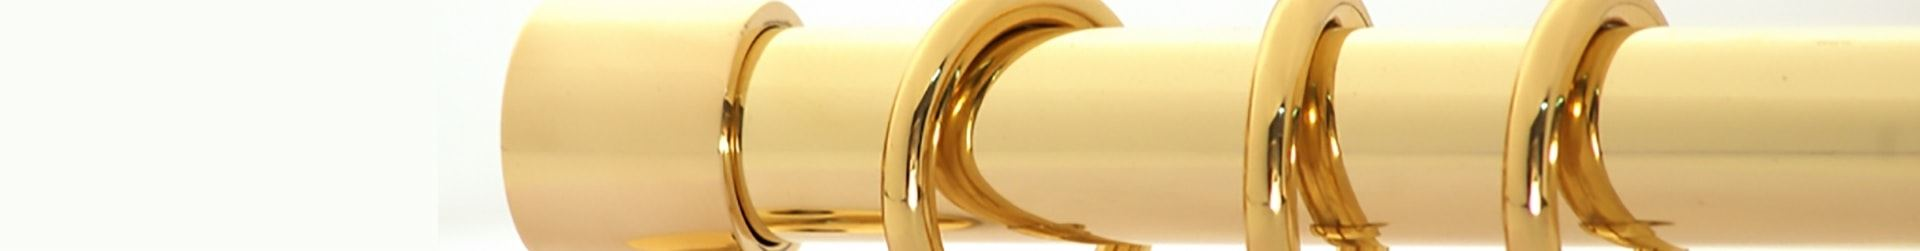 Brass Tubing, ends and Rings